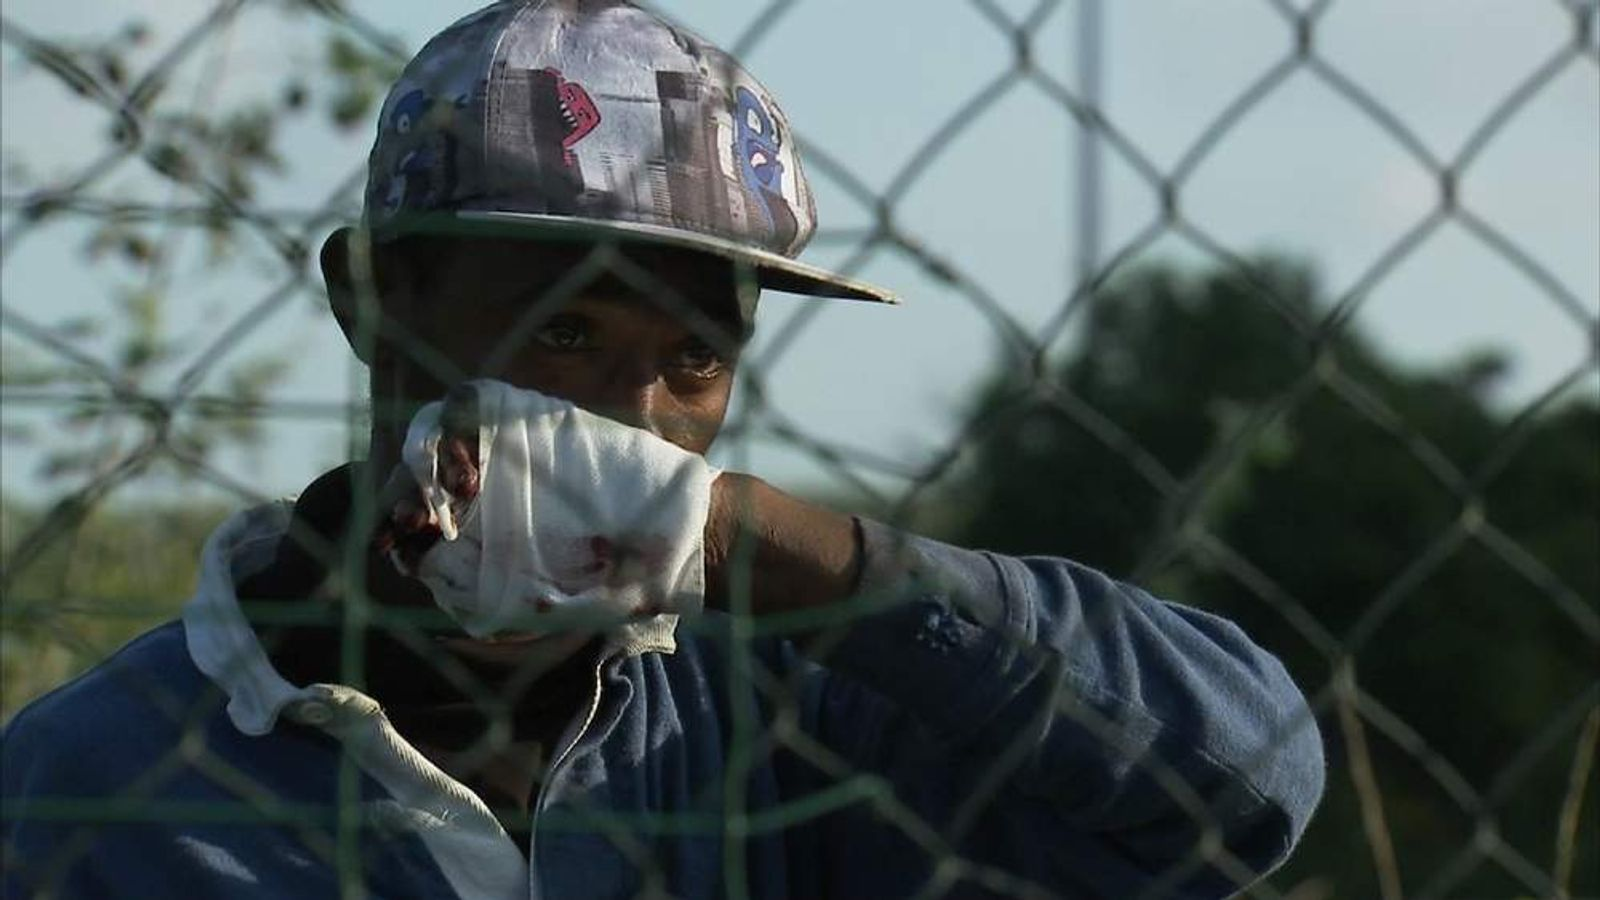 Injured migrant waits for treatment in Calais